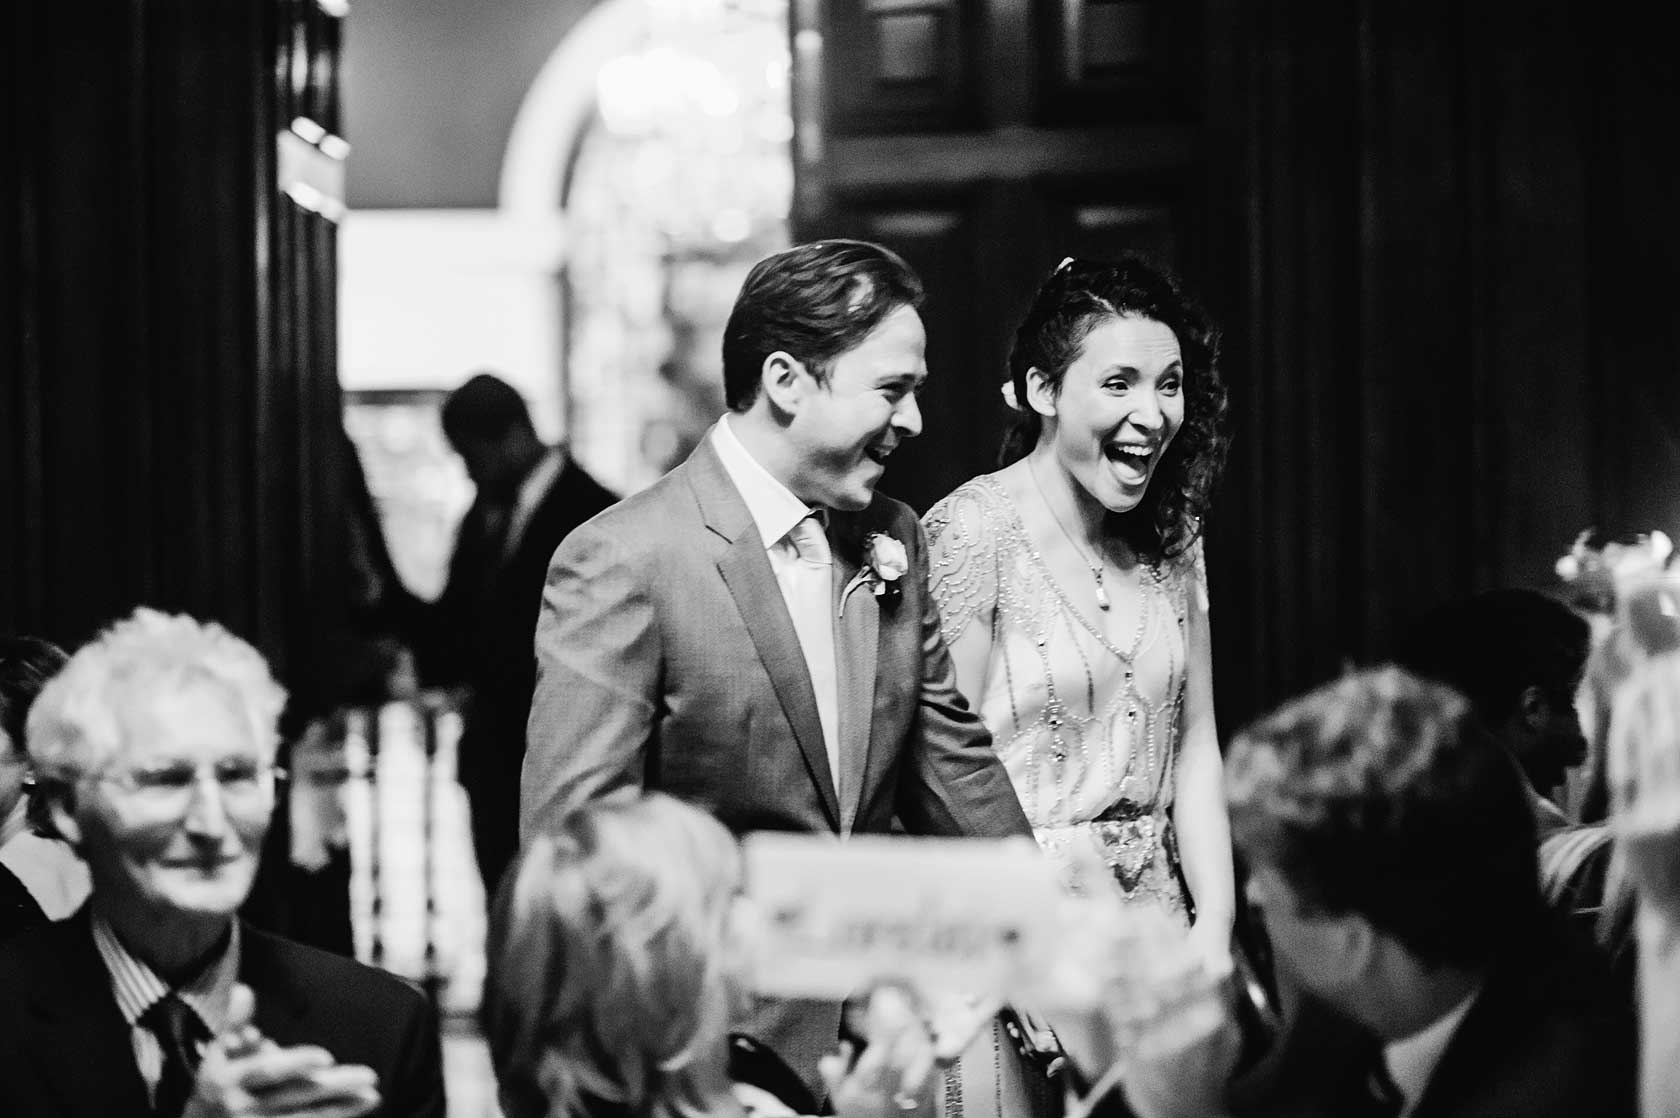 Wedding Photographer at Honourable Artillery Company